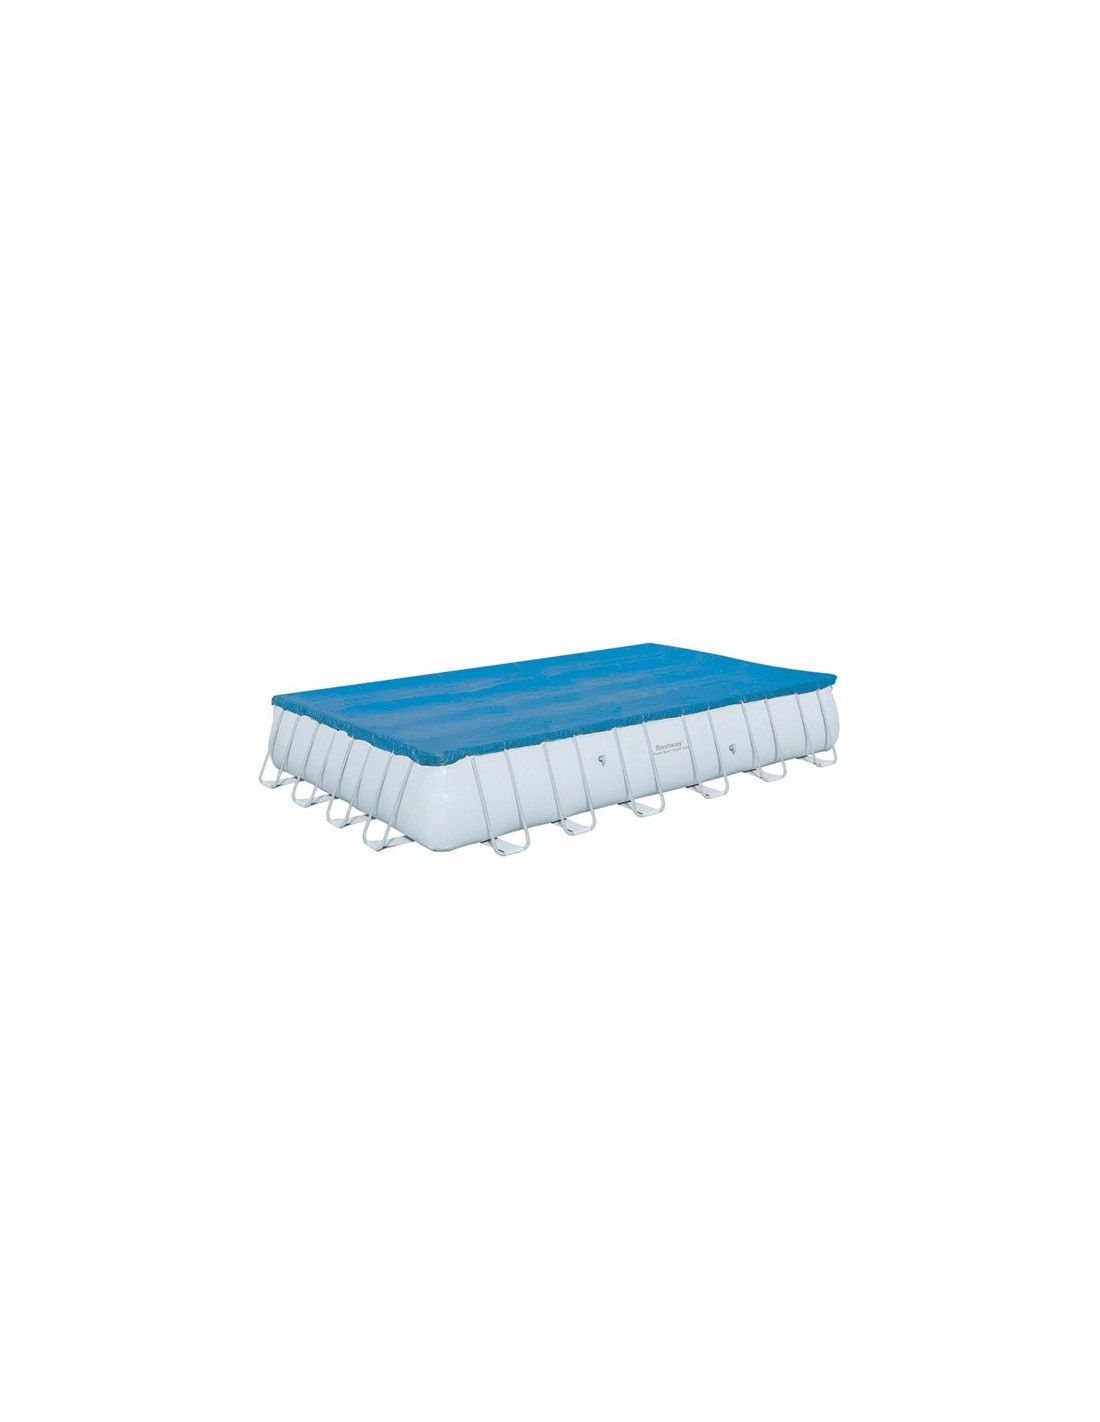 Piscine rectangulaire tubulaire bestway avec filtre sable for Piscine tubulaire